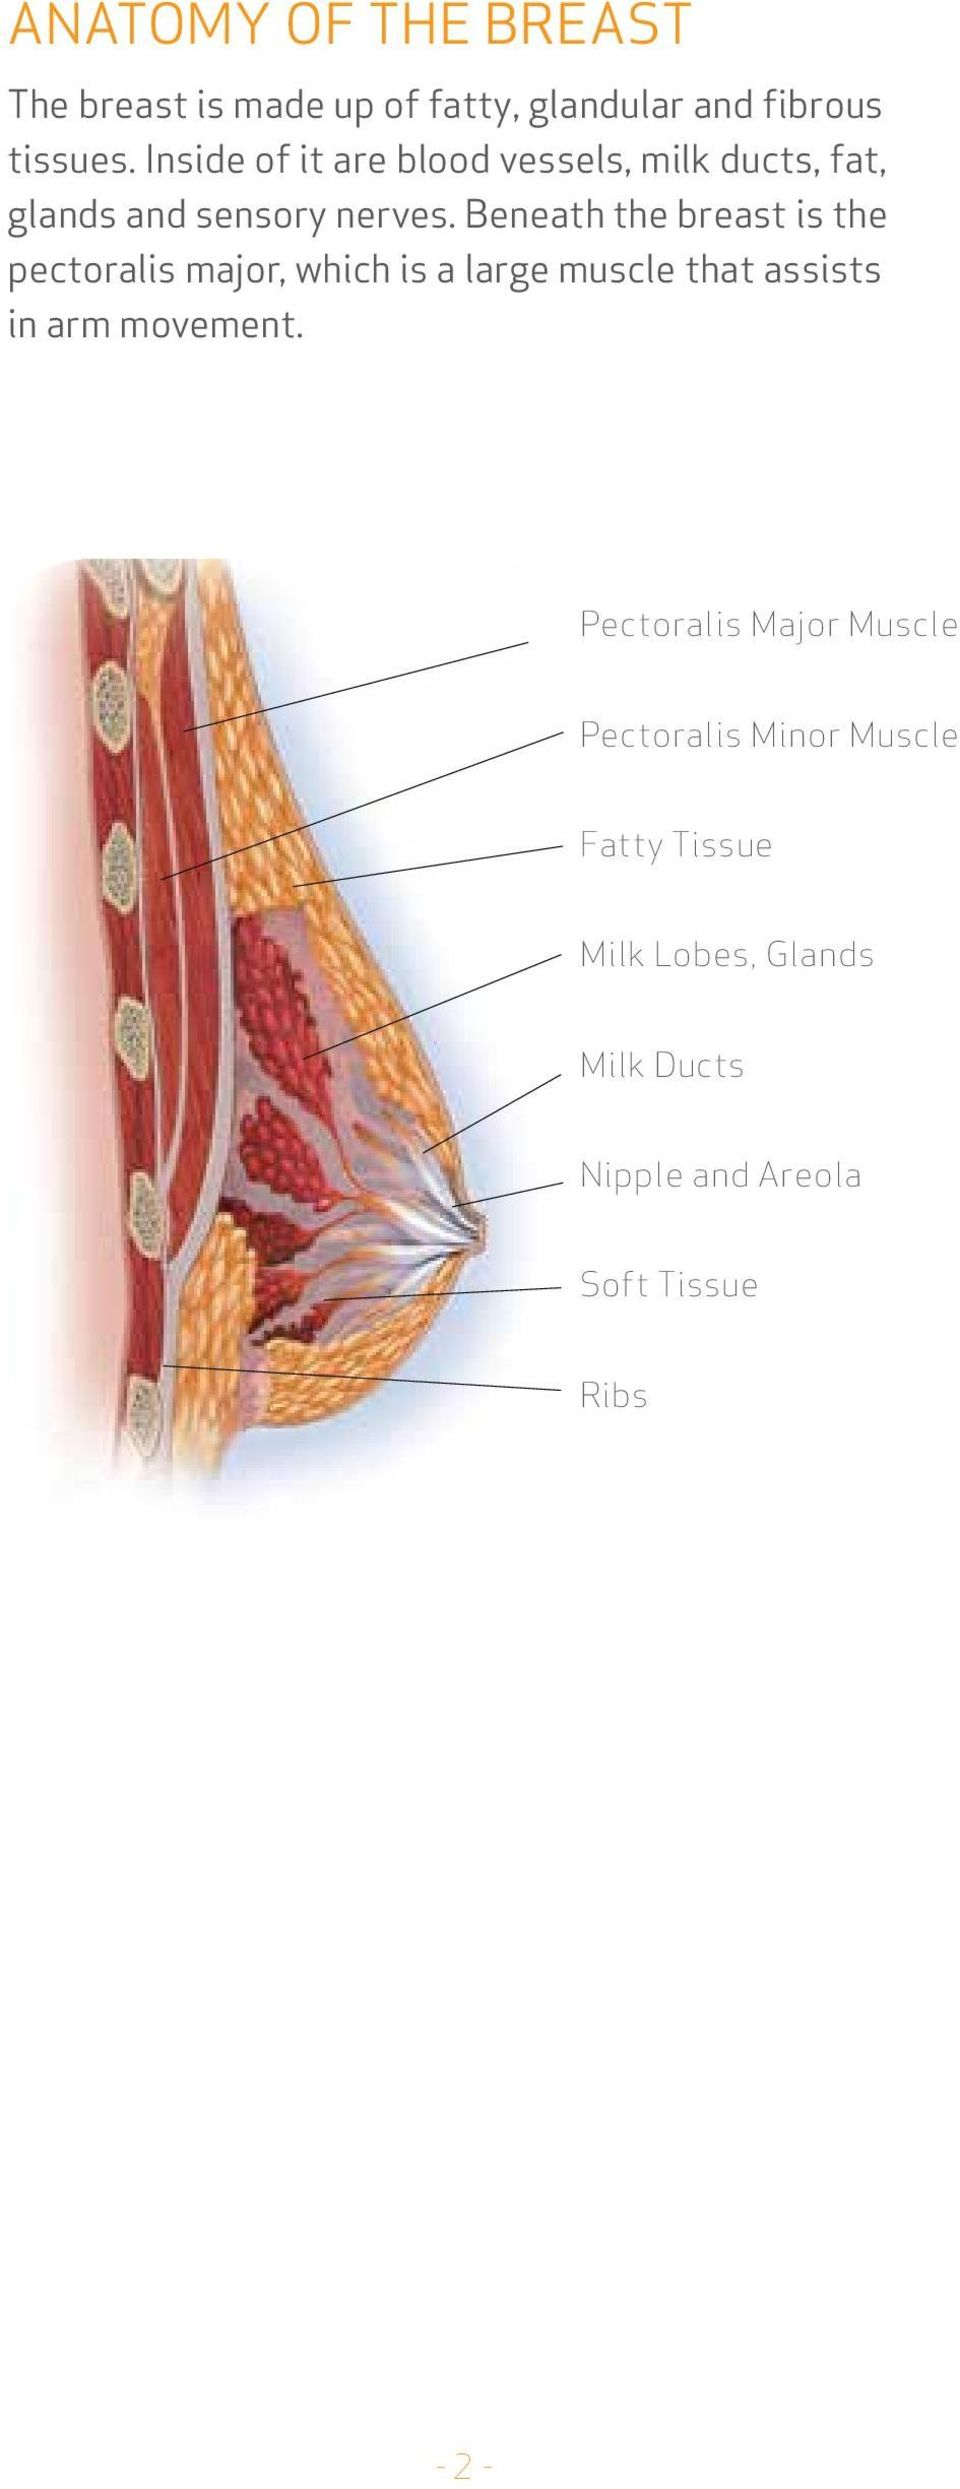 Beneath the breast is the pectoralis major, which is a large muscle that assists in arm movement.